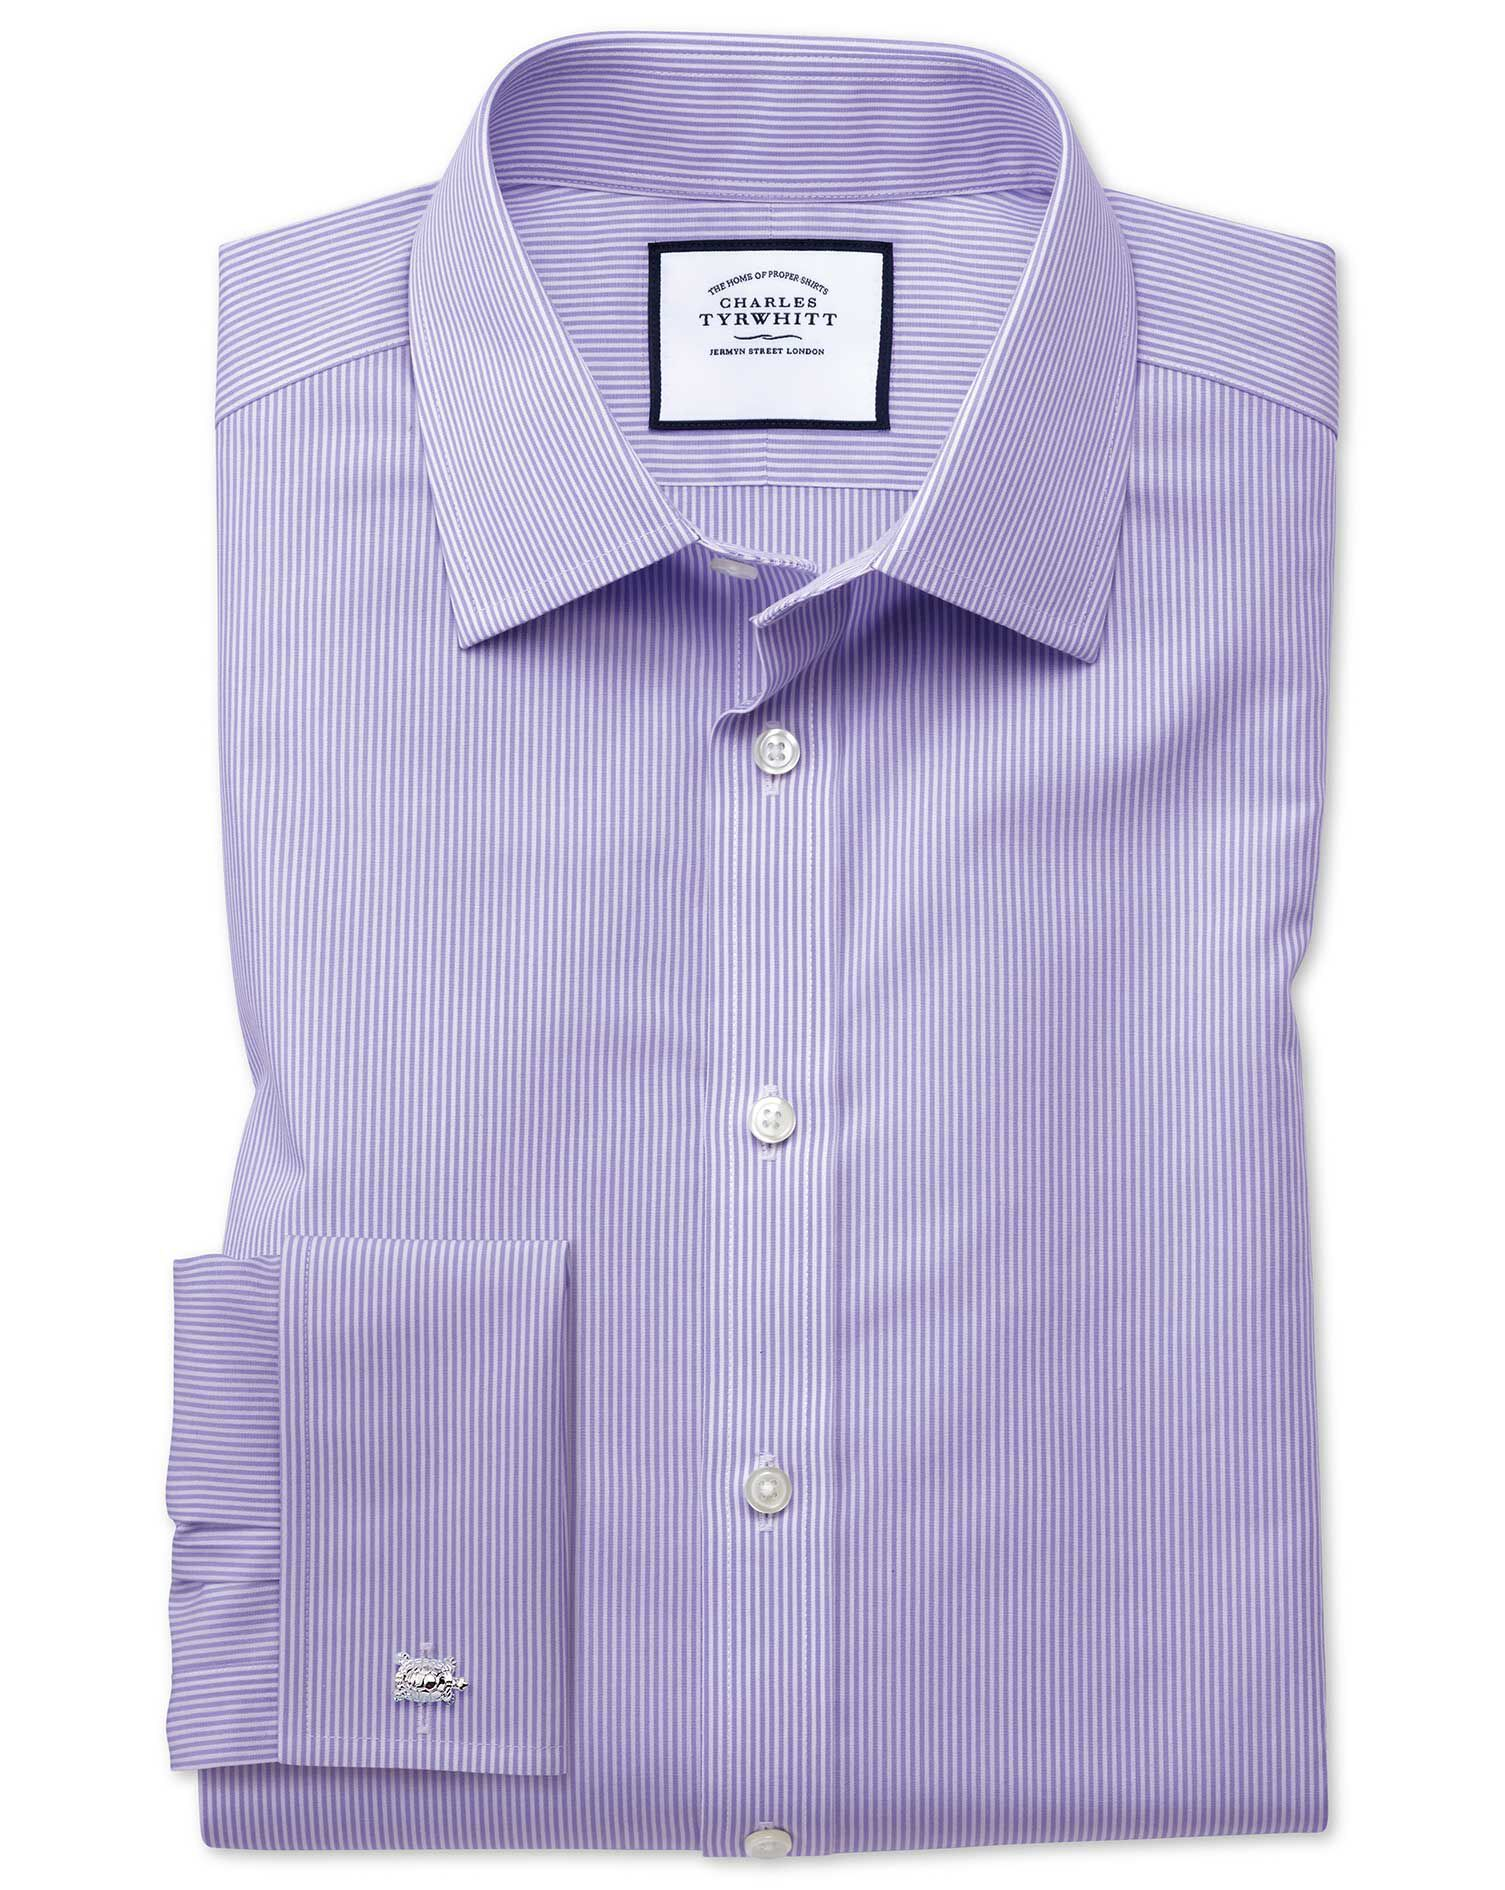 Slim Fit Non-Iron Bengal Stripe Lilac Cotton Formal Shirt Single Cuff Size 15/34 by Charles Tyrwhitt